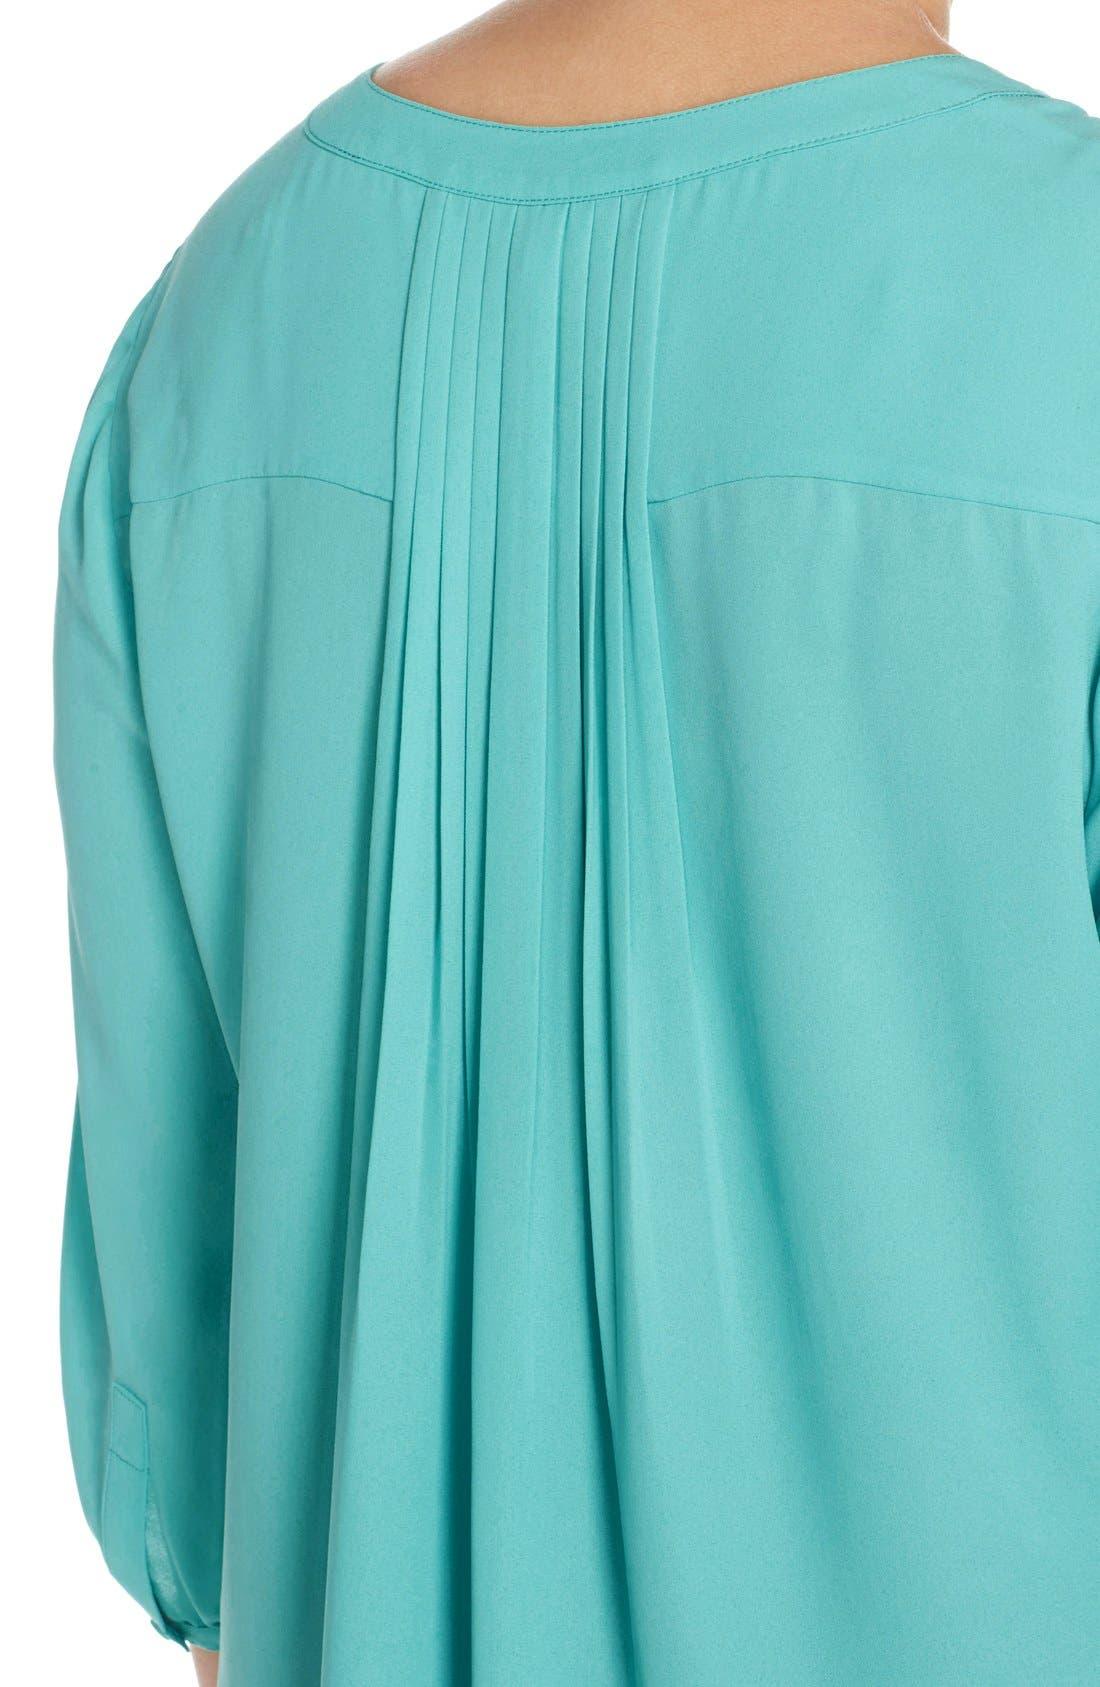 Henley Top,                             Alternate thumbnail 126, color,